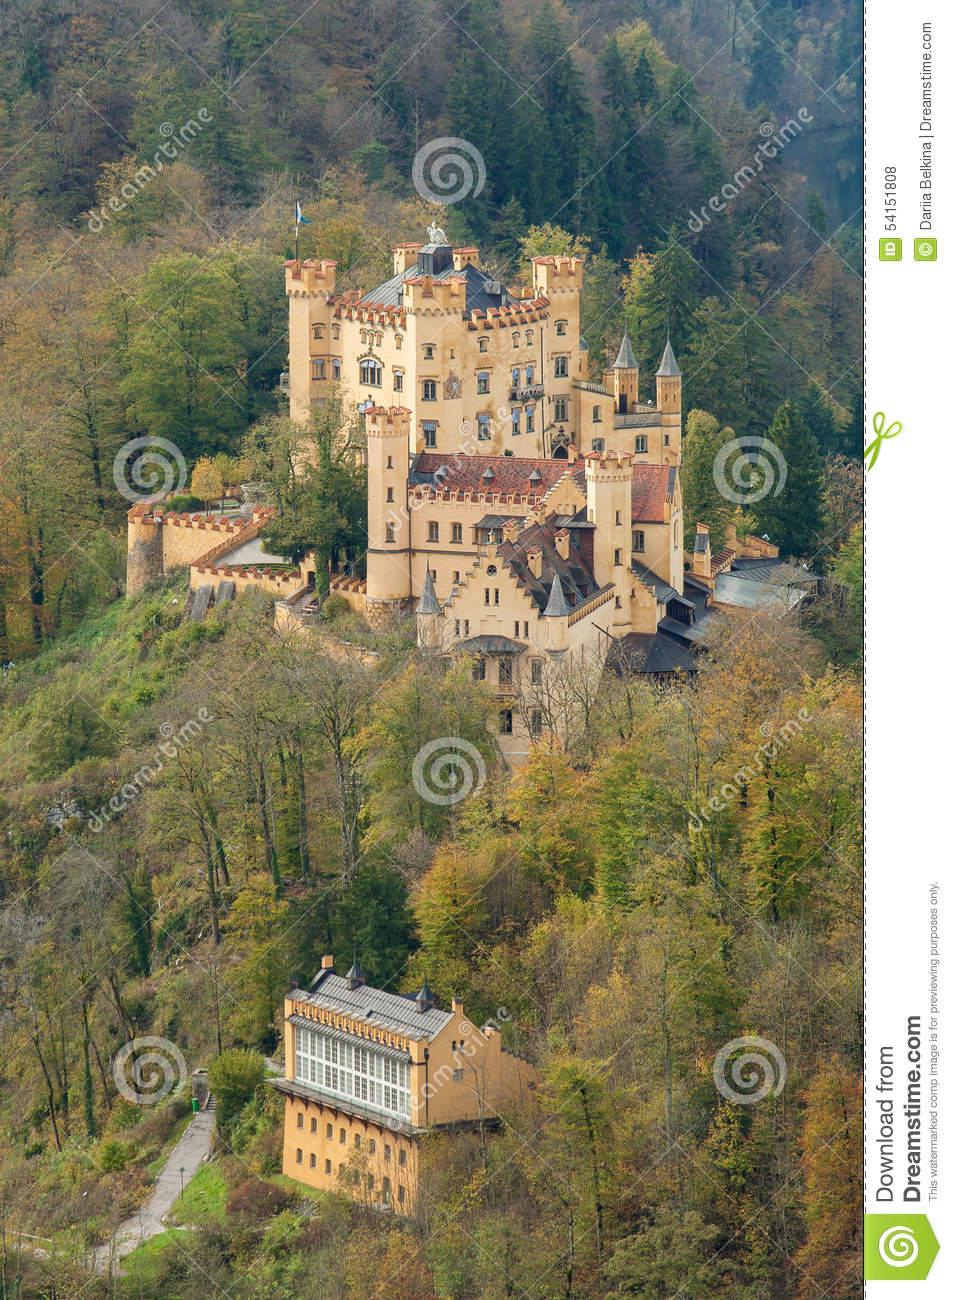 The Castle Of Hohenschwangau In Bavaria, Germany Stock Photo.